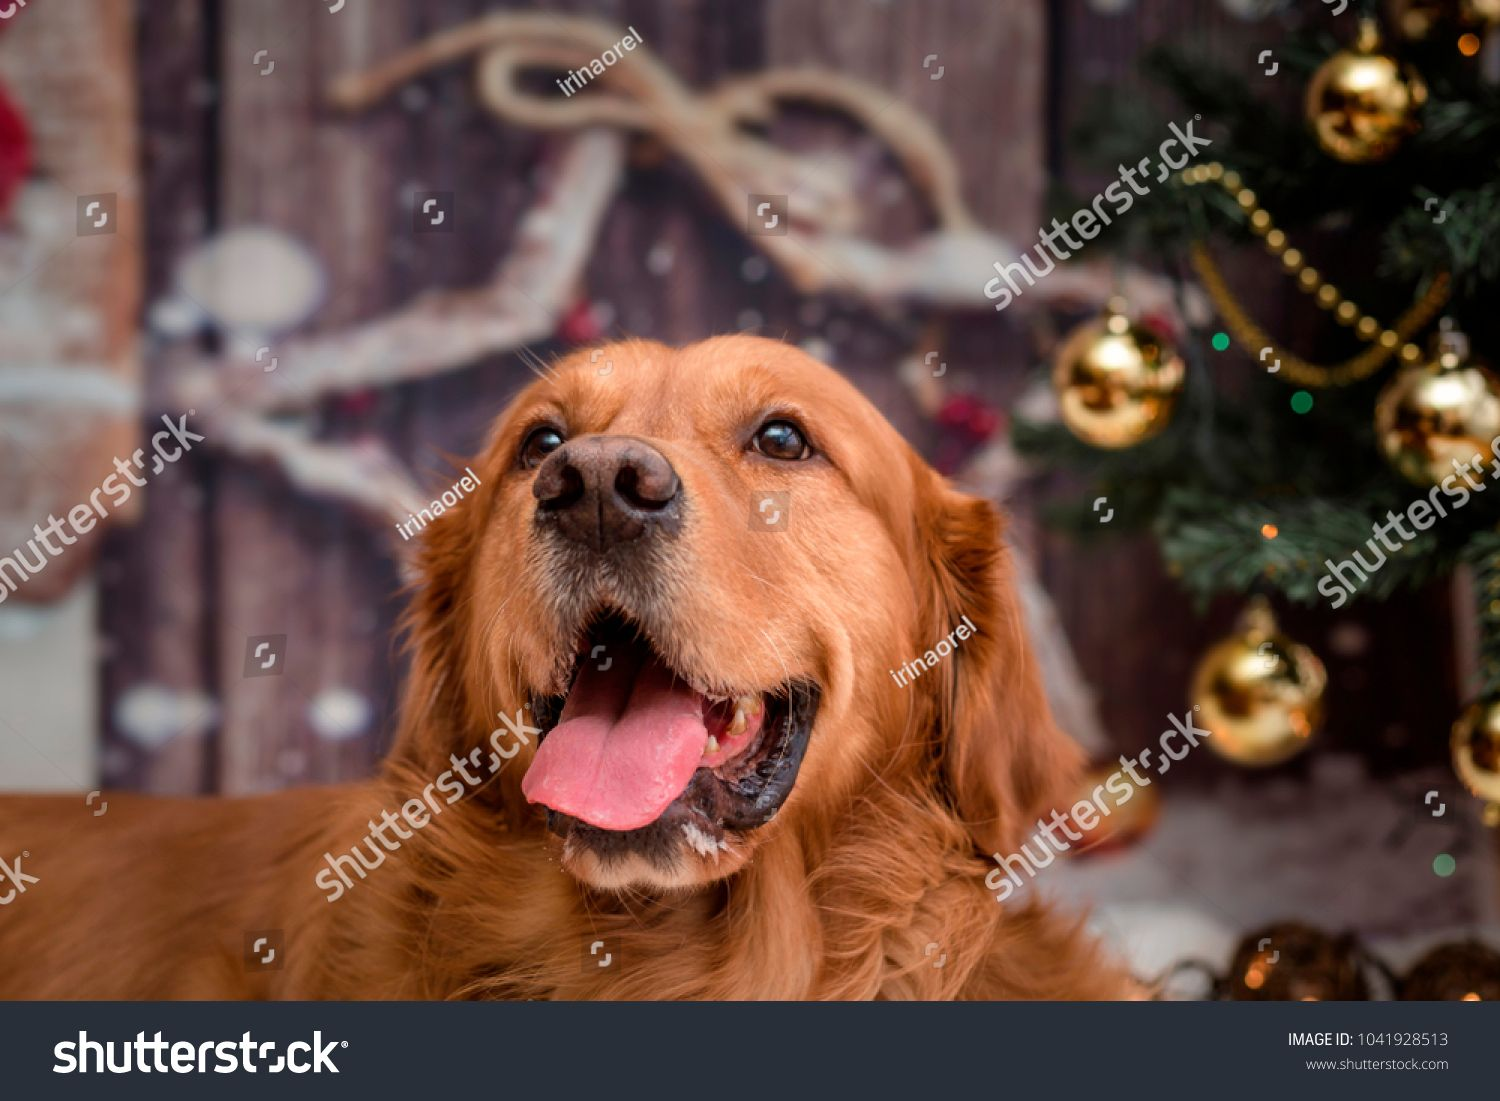 Golden Retriever Dog On New Year Background With Christmas Tree